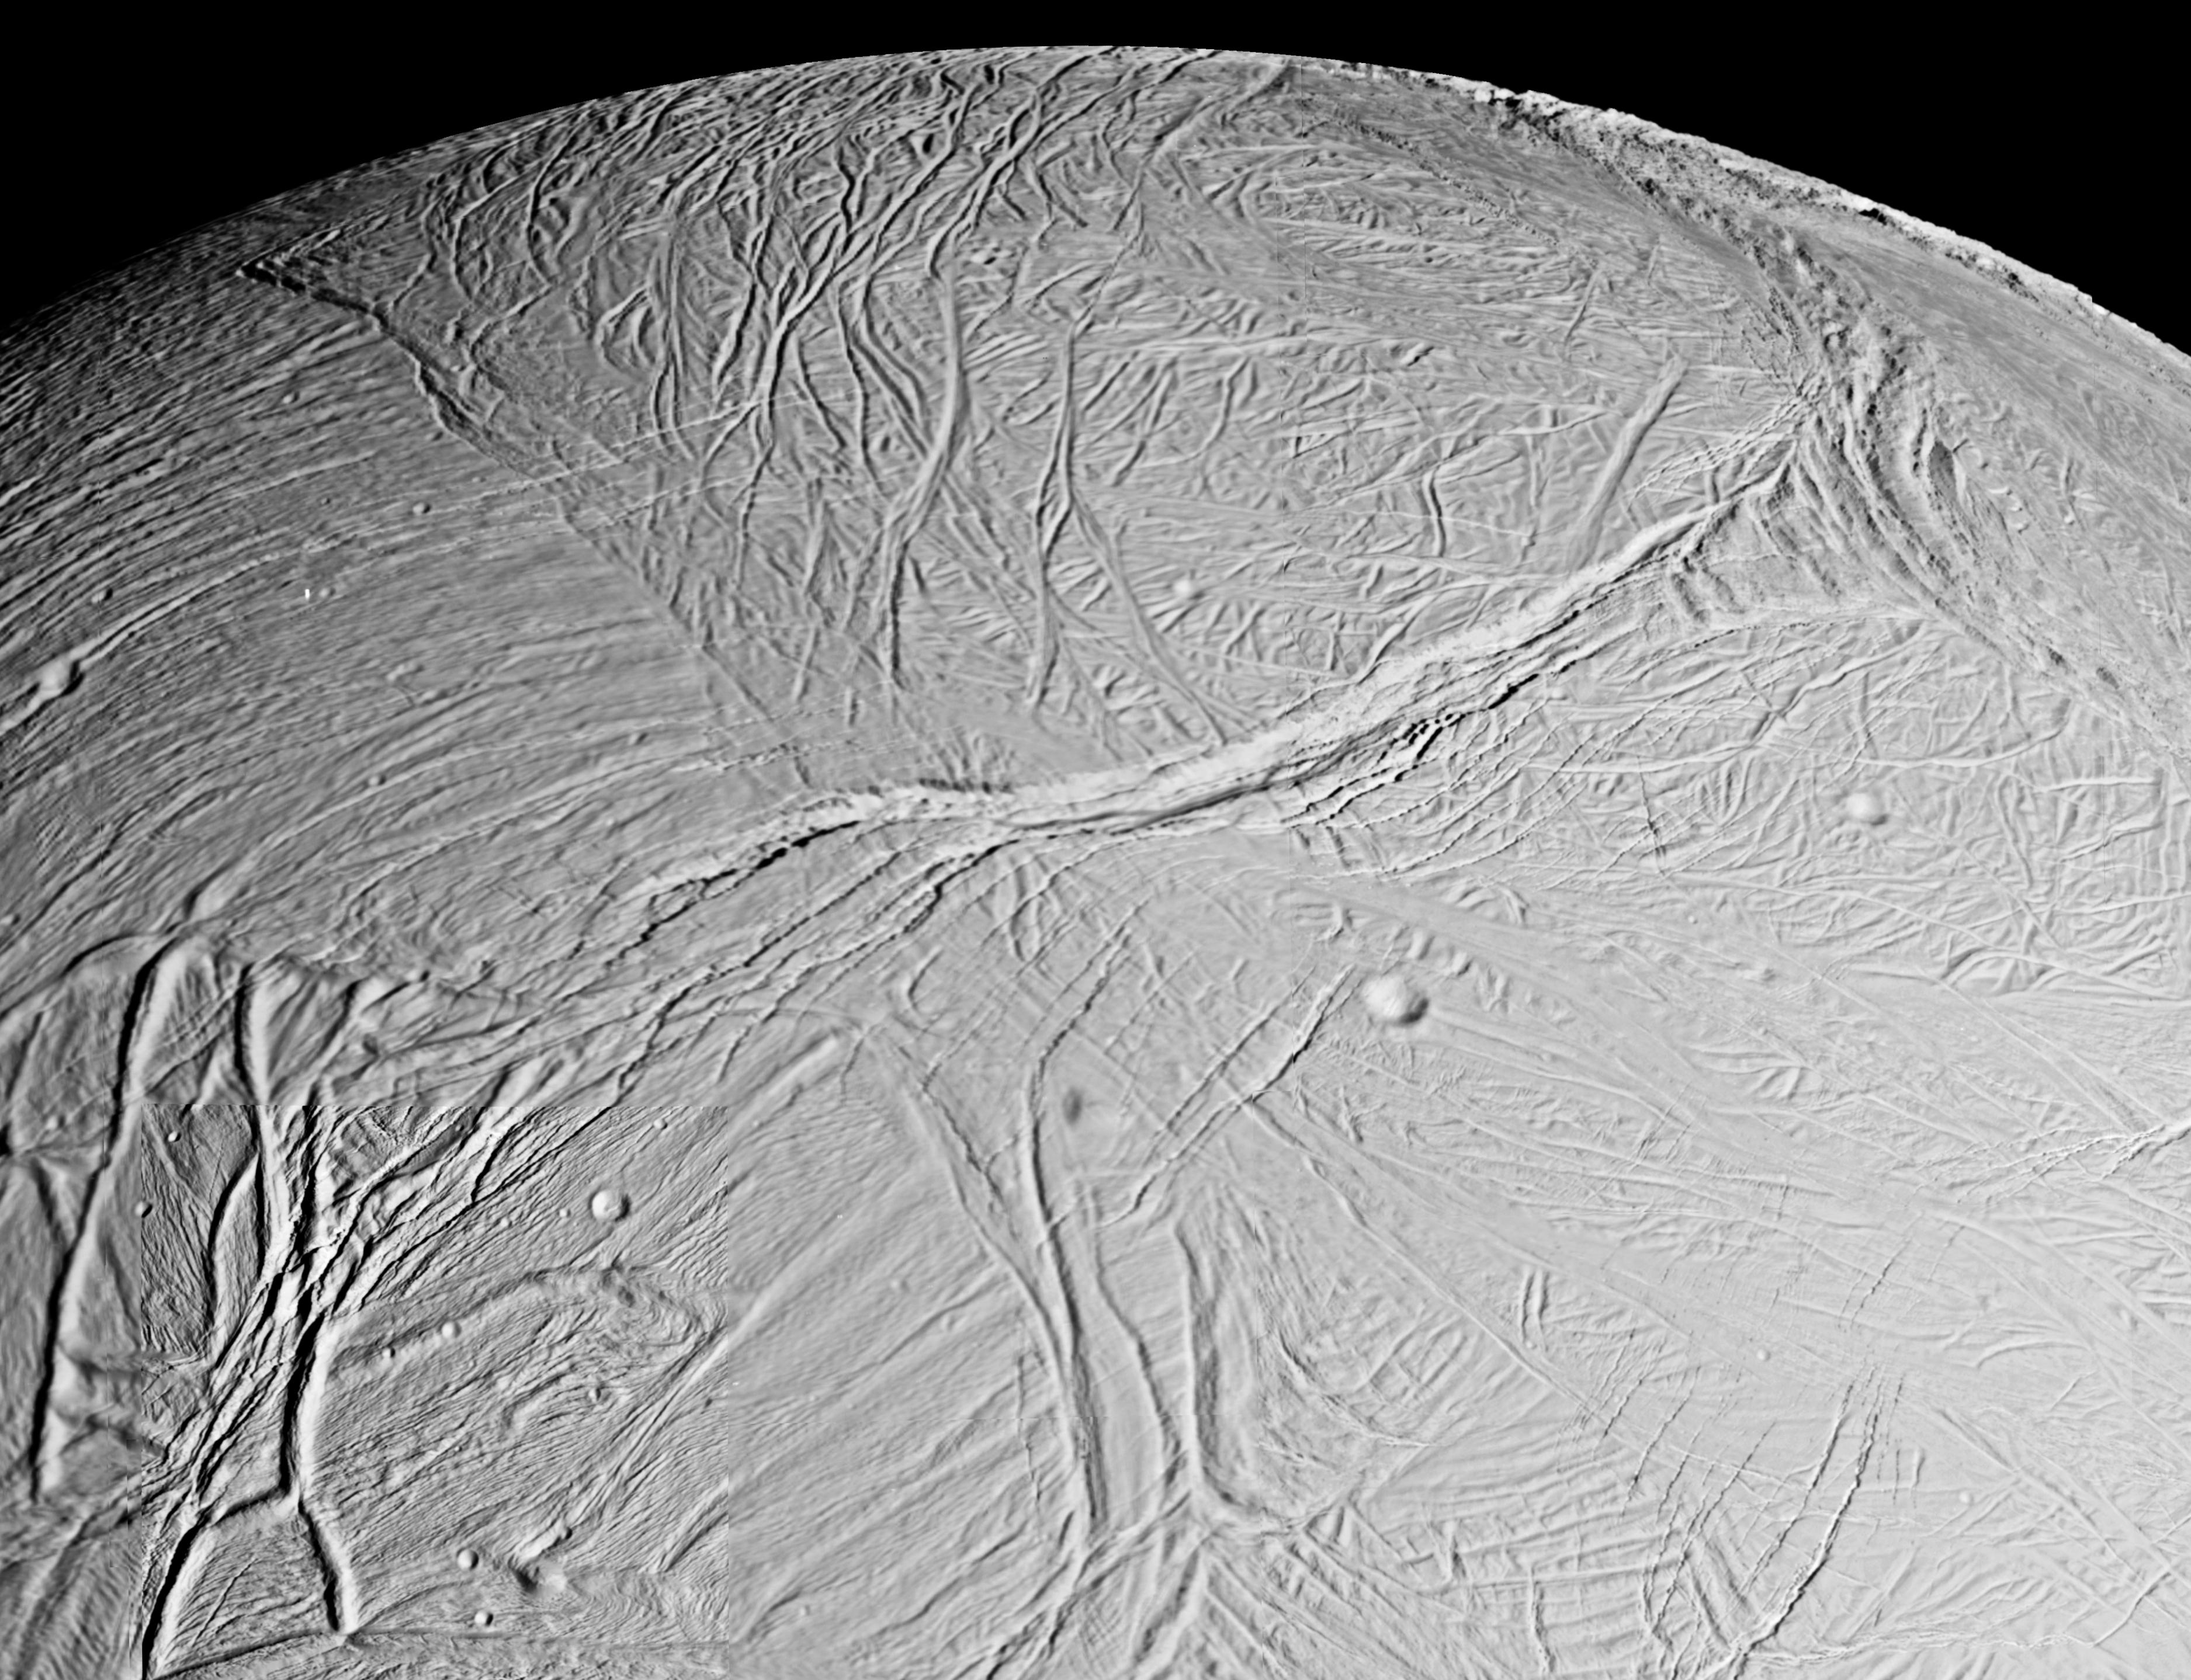 NASA on Enceladus - Infrared Mapping Reveals Fresh Ice on Northern Hemisphere - Science Times